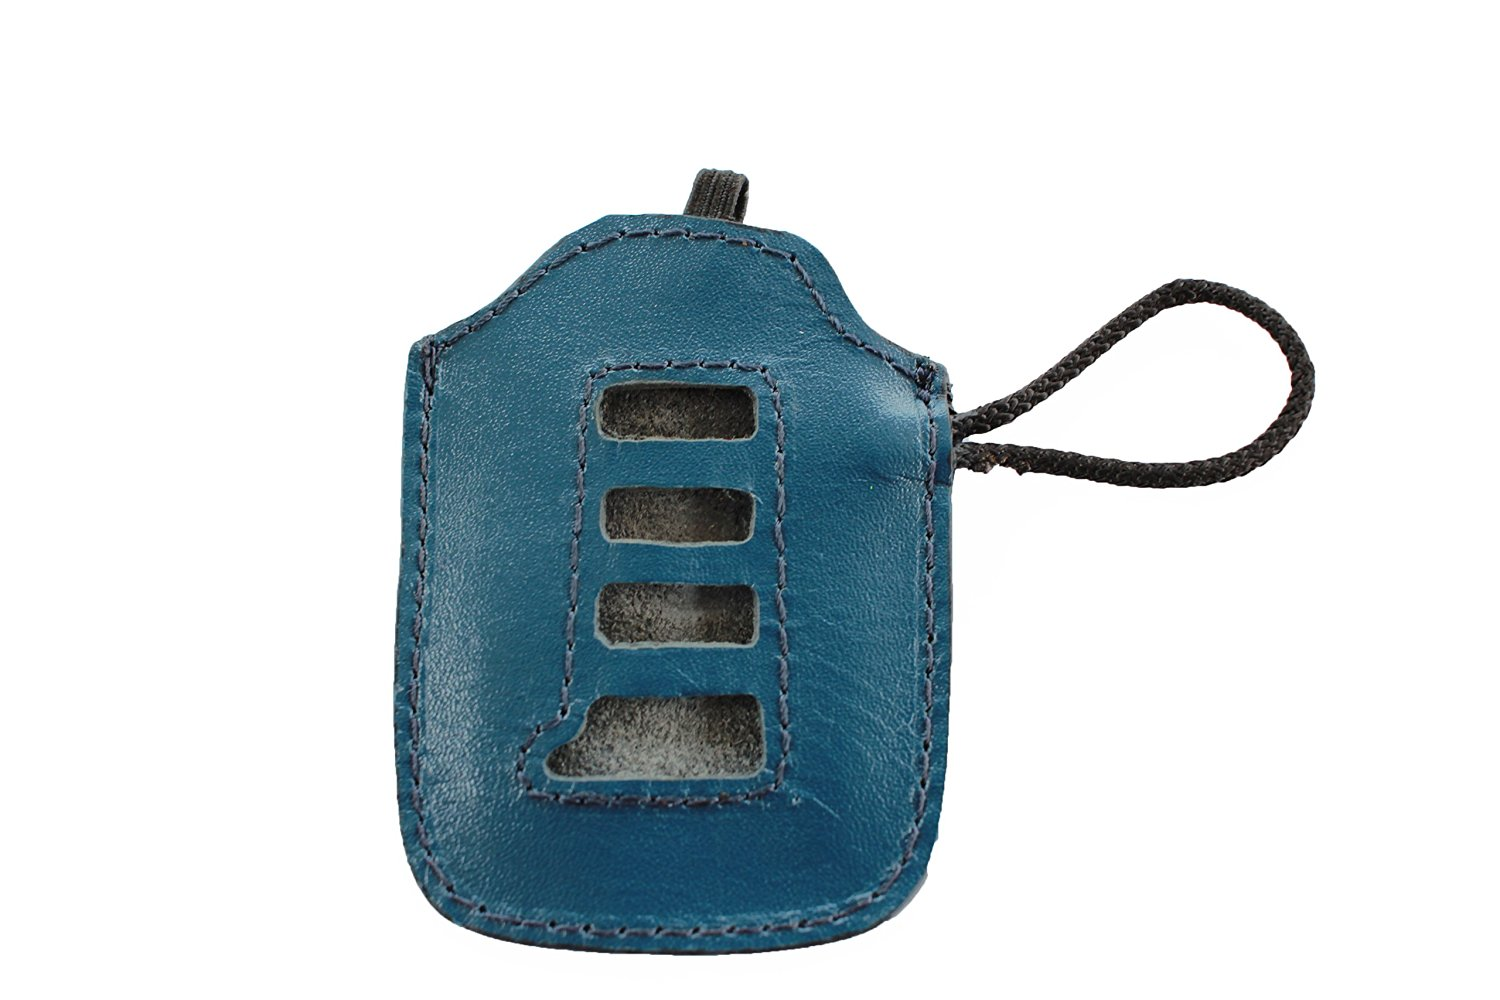 Deep Sea Mica Blue Leather Key Fob Cover For Lexus IS200t IS250 IS300 IS350 ES300h ES350 GS200t GS350 GSF RC200t RC300 RC350 RCF NX200t NX300h RX350 RX450h LS460 LS600h HYQ14FBA